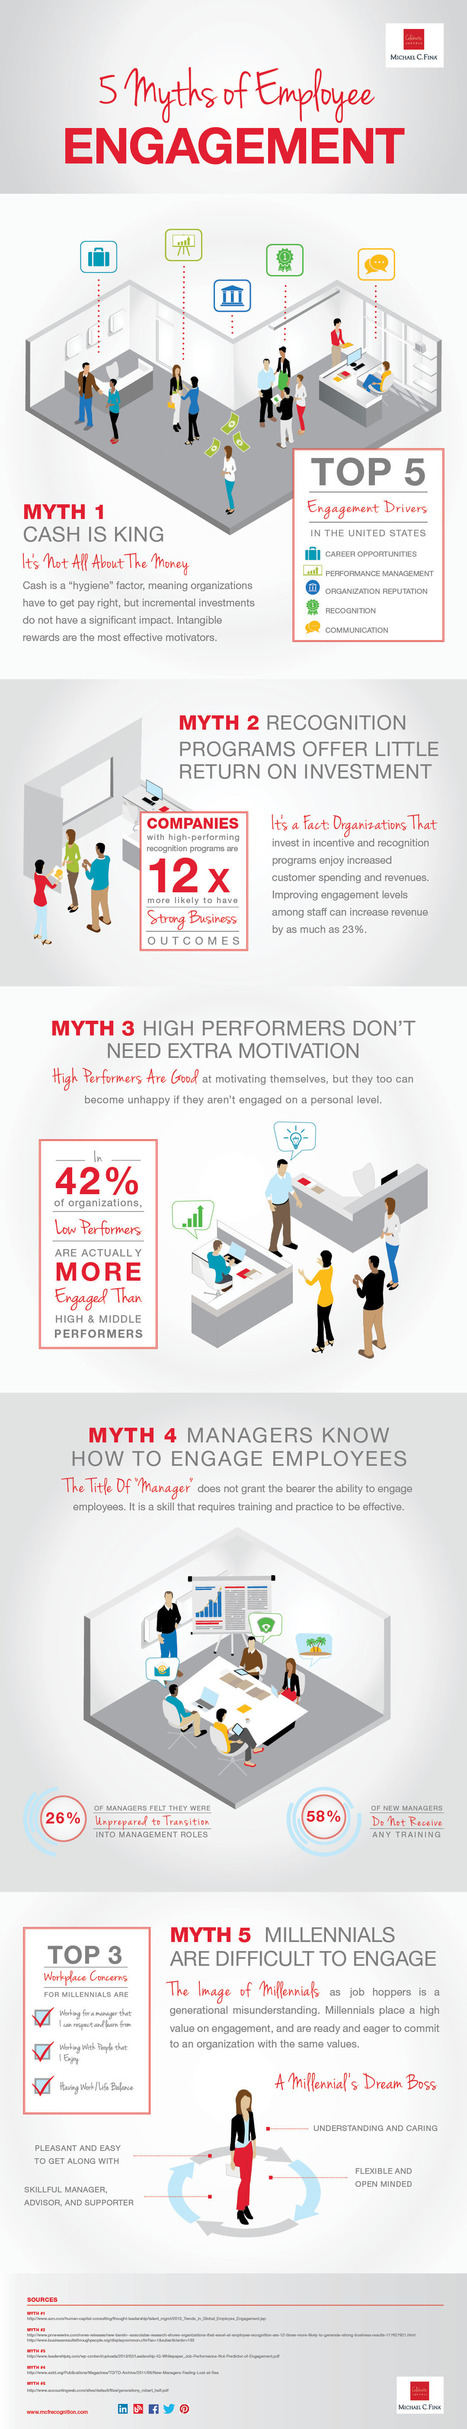 5 Myths of Employee Engagement Debunked! [INFOGRAPHIC] | Social Recruiting | Scoop.it